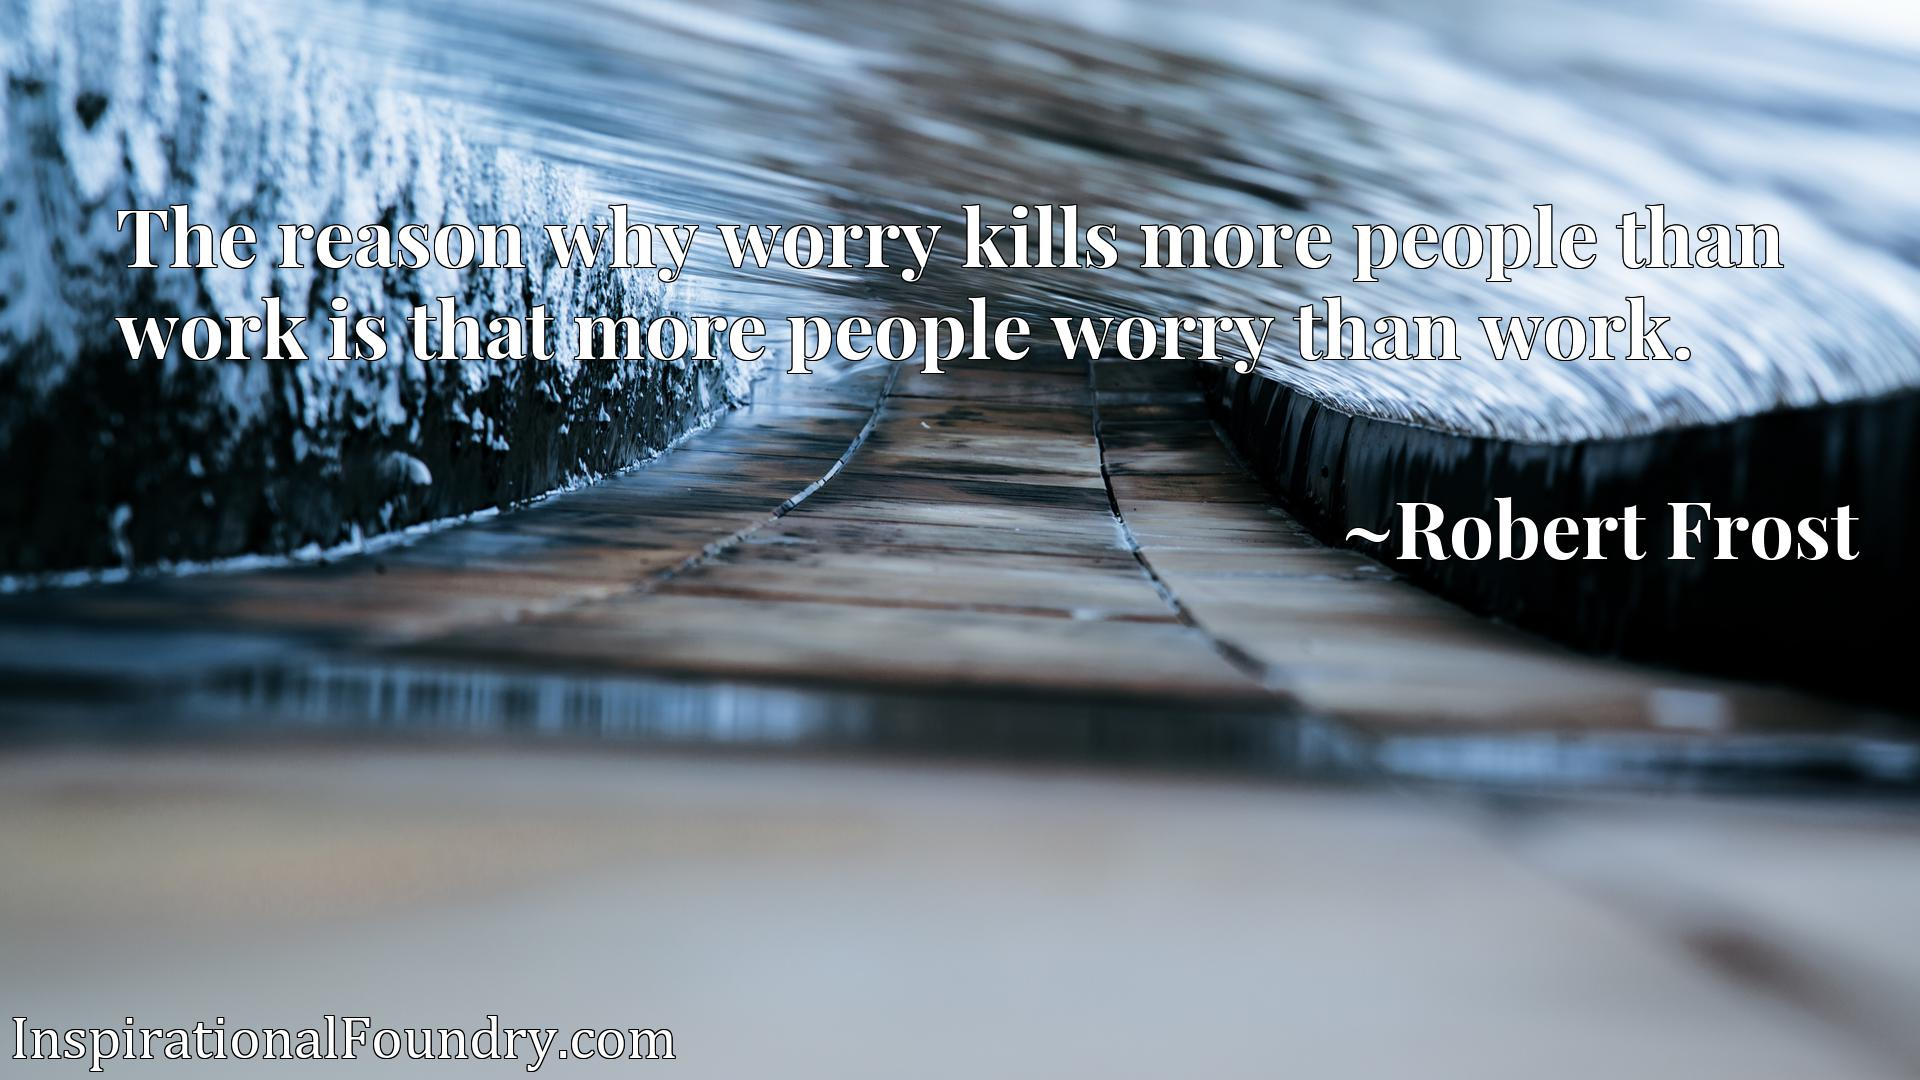 The reason why worry kills more people than work is that more people worry than work.